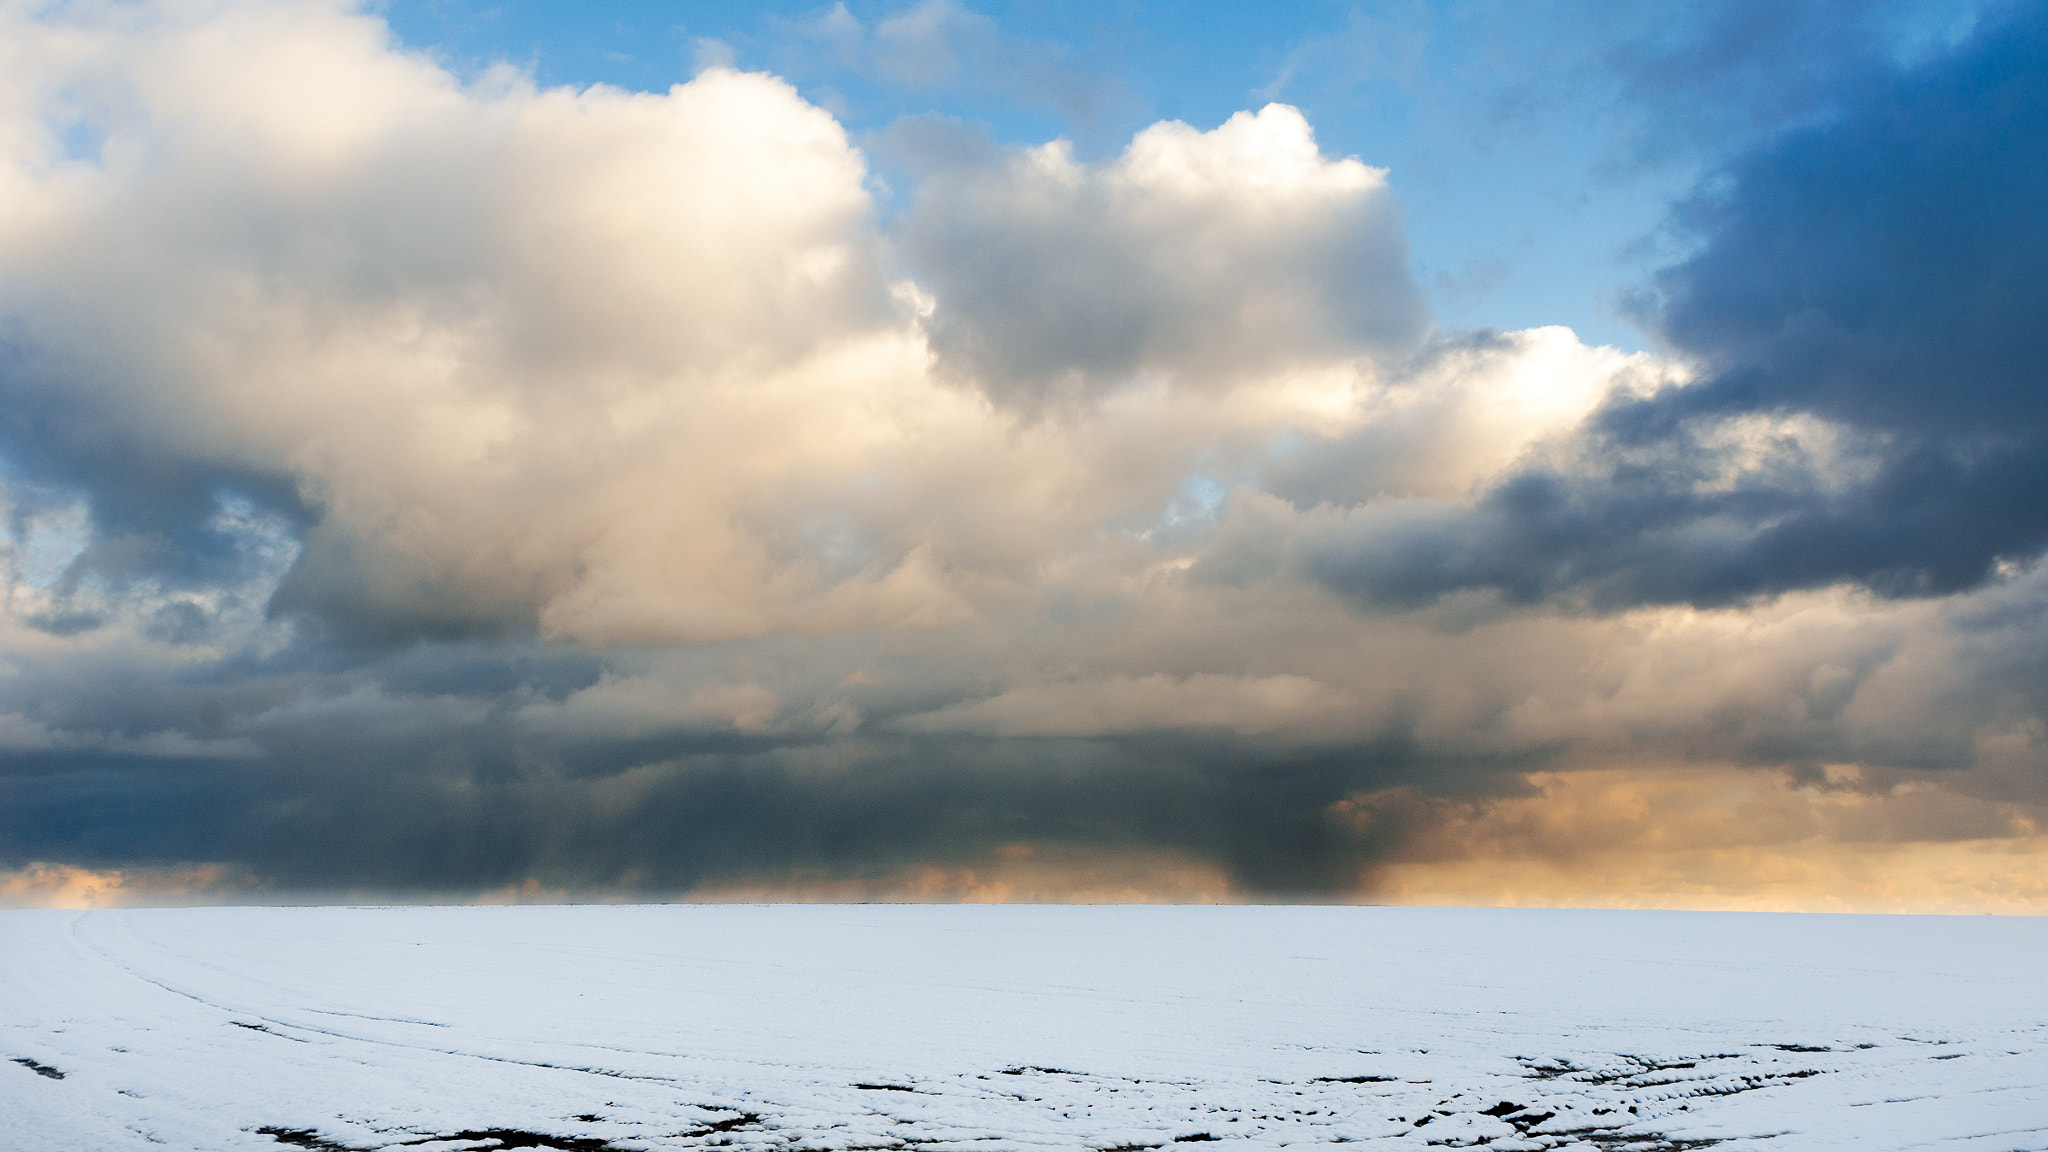 Photograph Snow and Storm by Tom  O'Leary on 500px